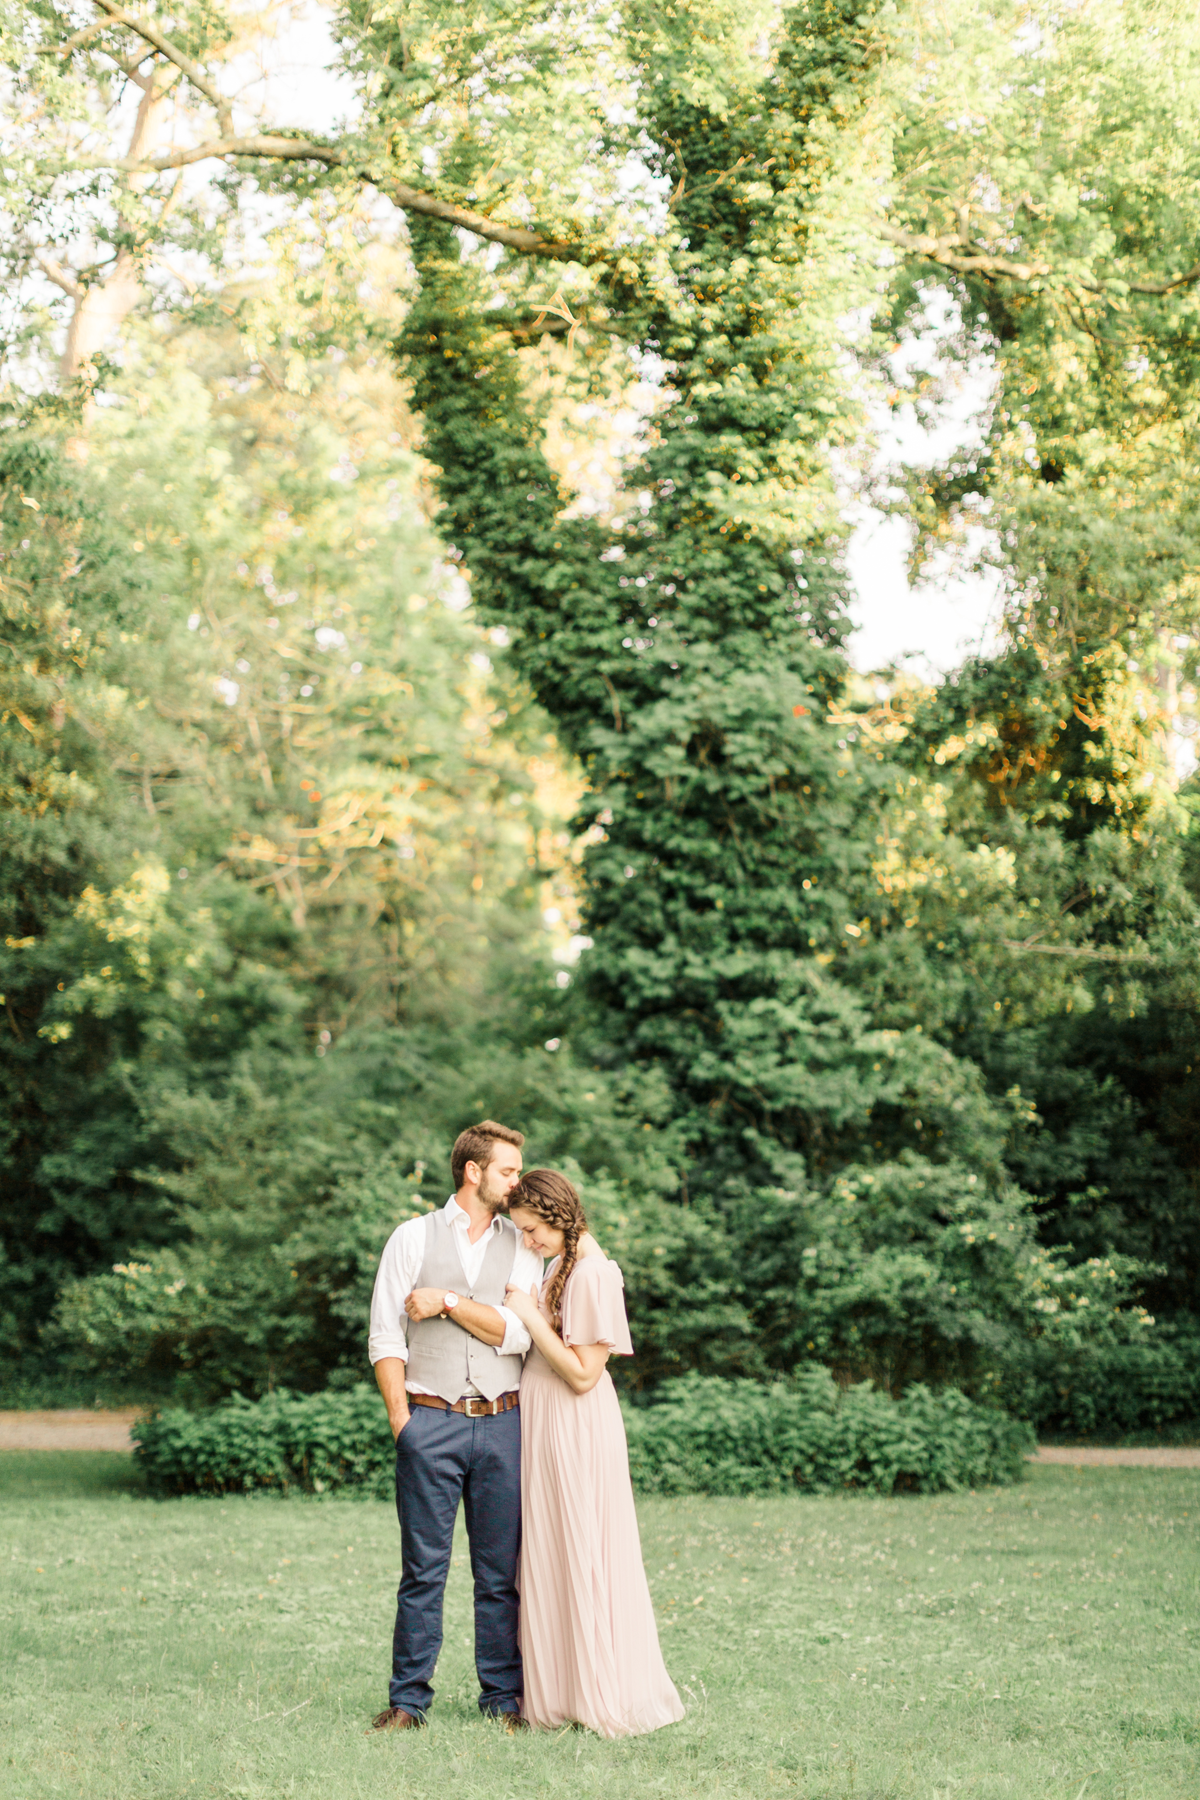 i-smithfield-park-engagement-session